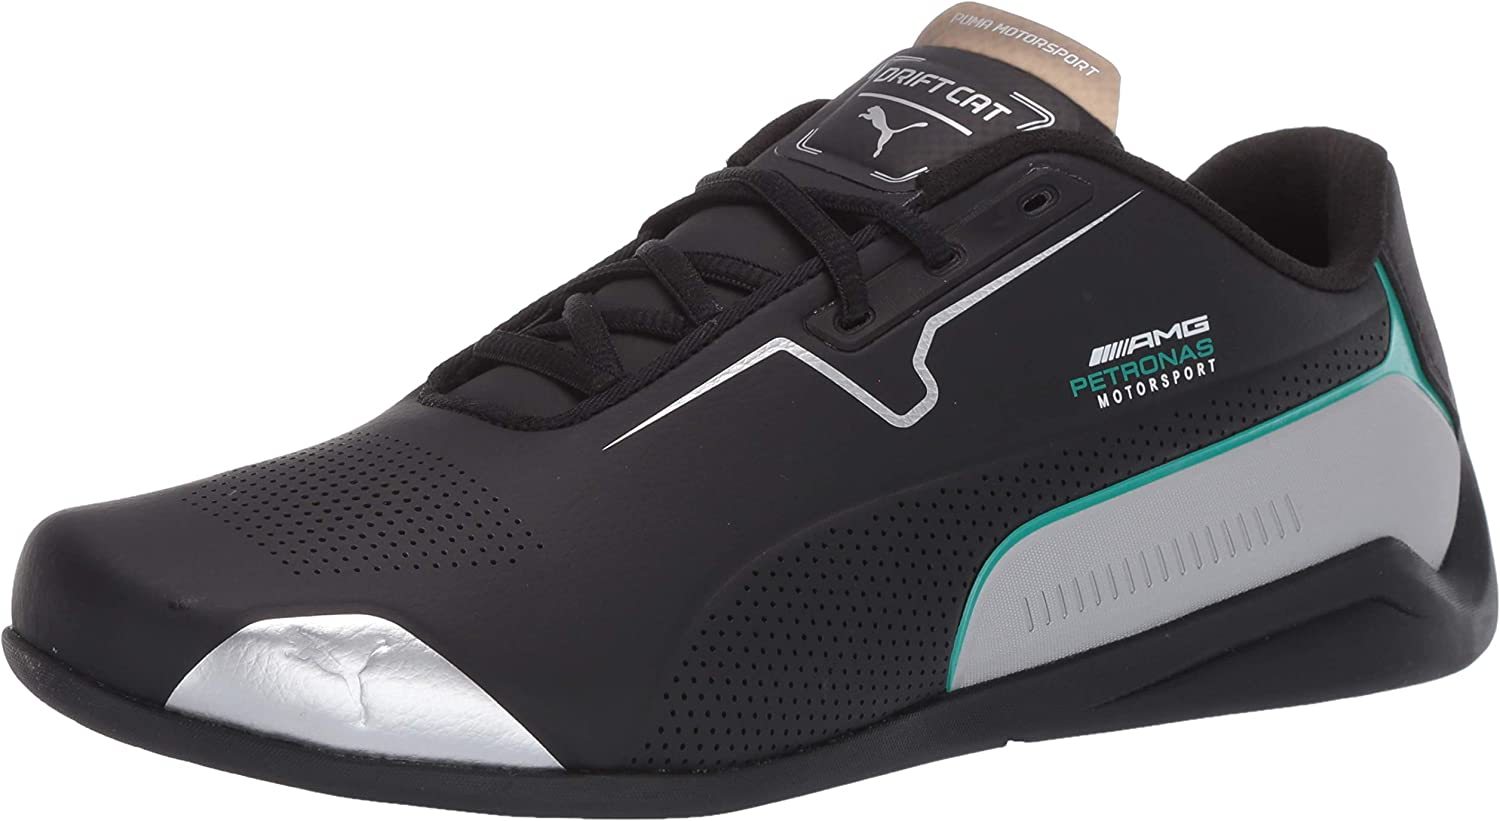 PUMA Mercedes Drift 8 Sneaker Super New Shipping Free Shipping beauty product restock quality top Cat